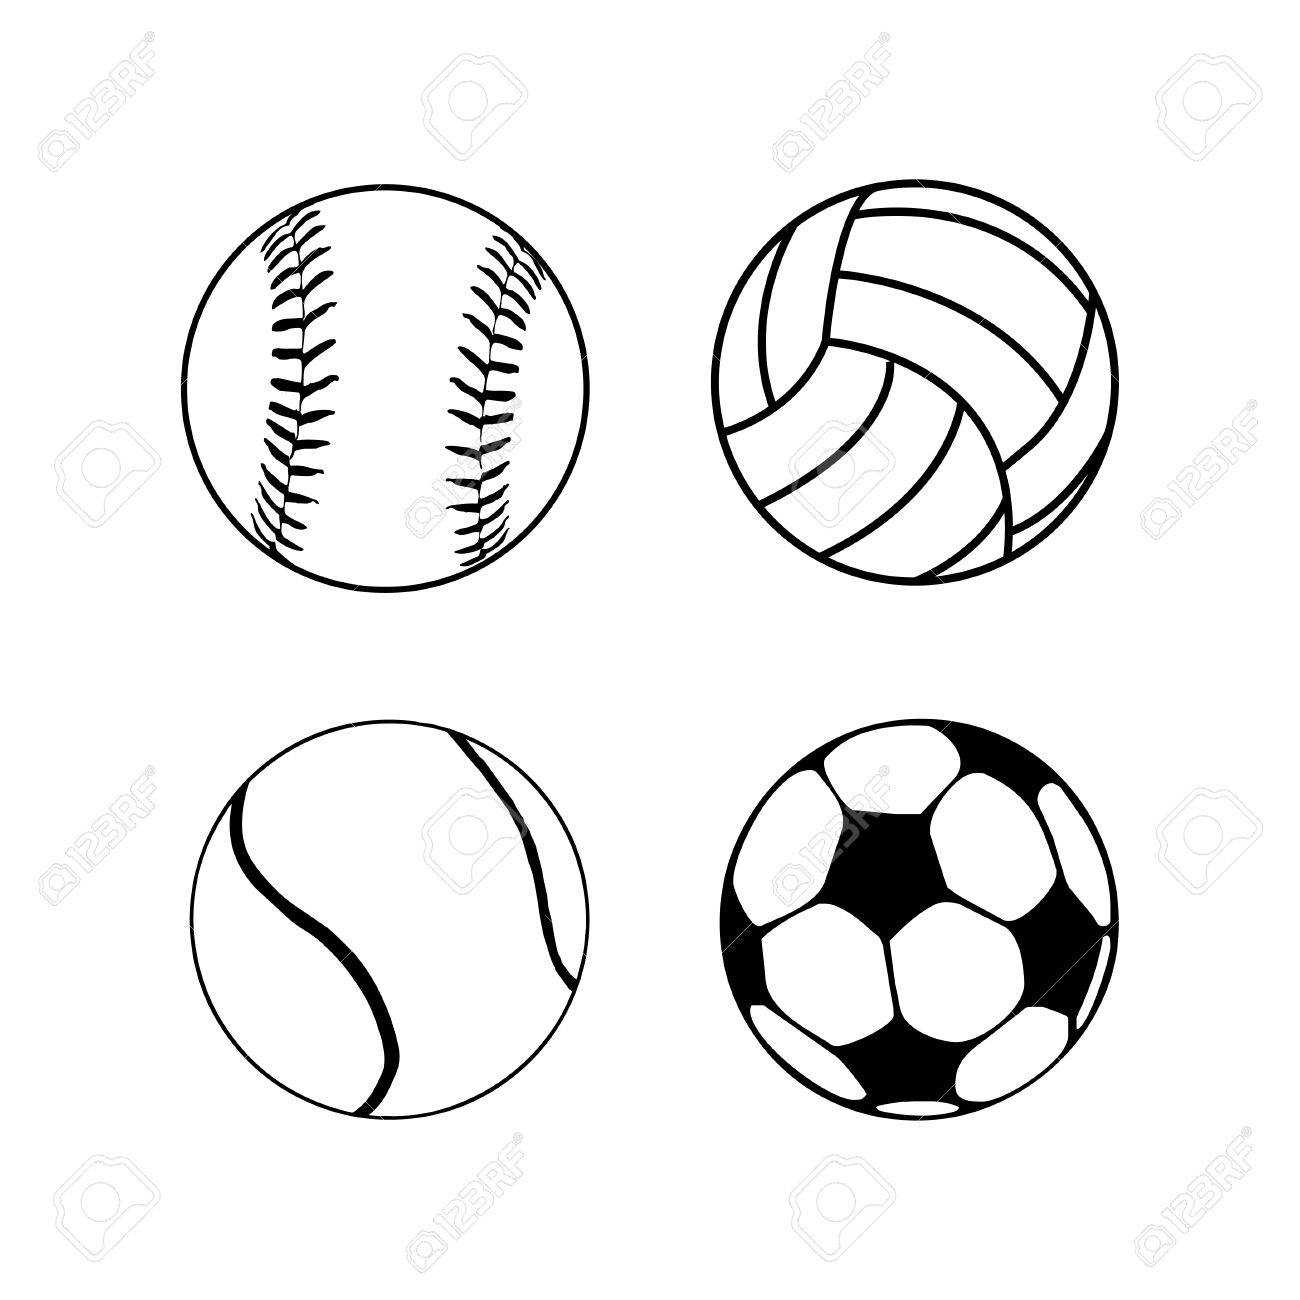 Collection Black And White Balls Royalty Free Cliparts Vectors And Stock Illustration Image 37593946